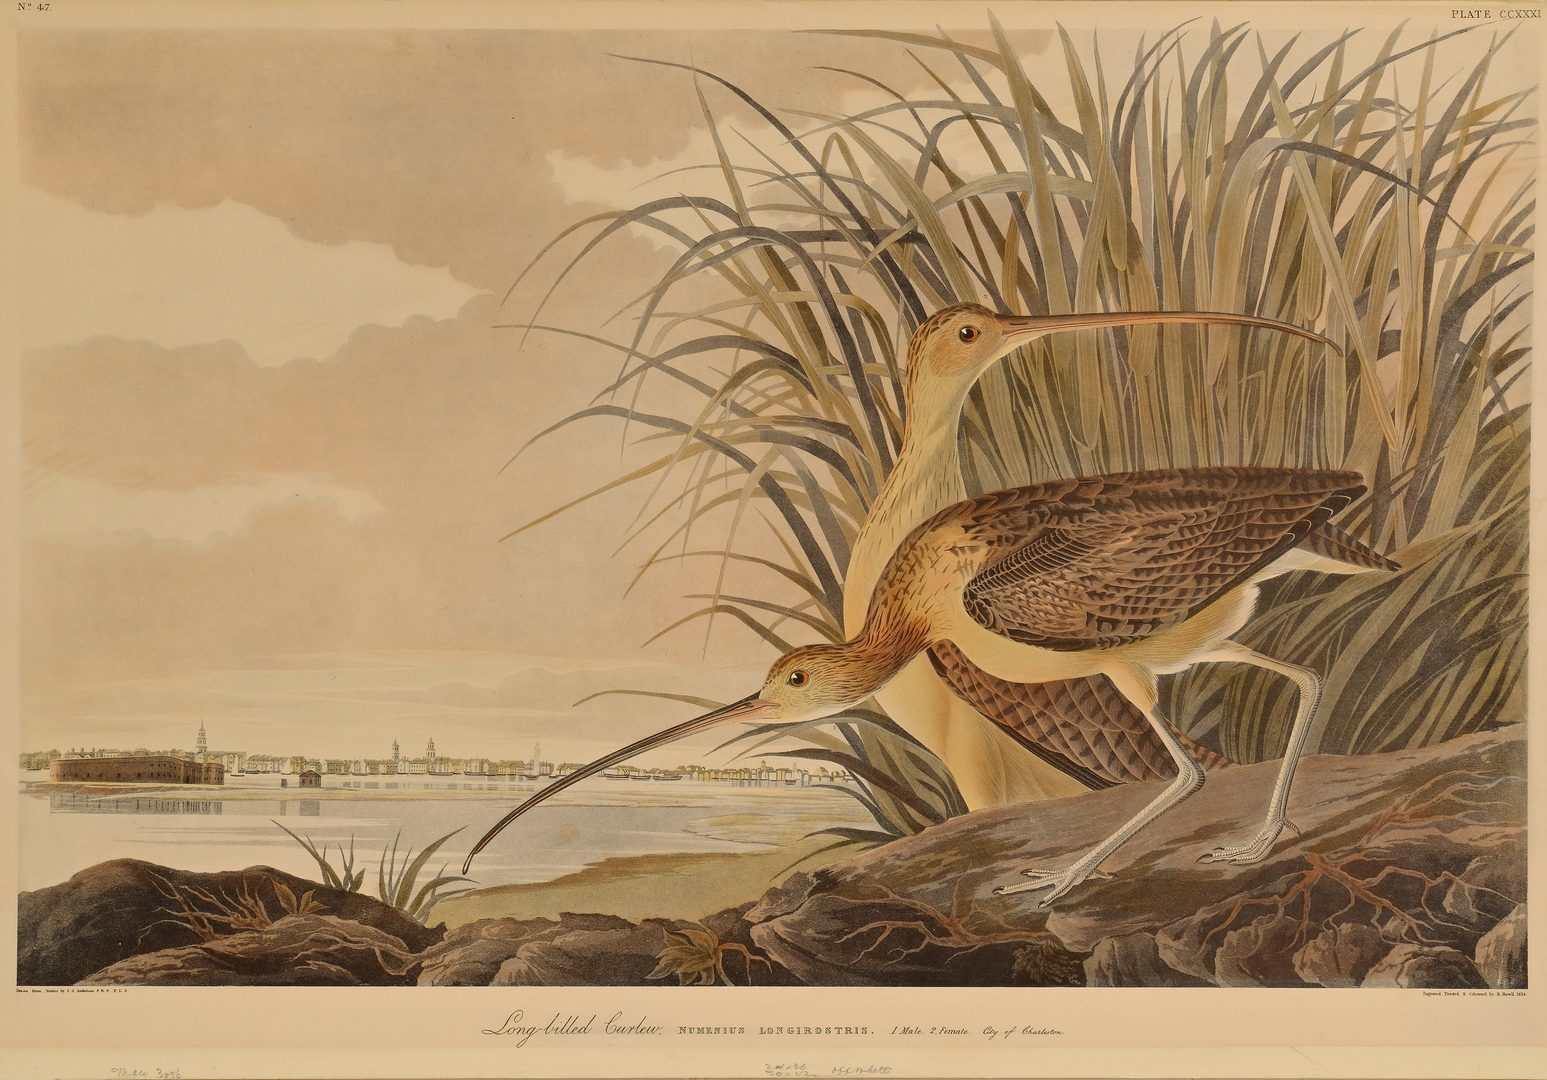 Lot 106: After Audubon, Long Billed Curlew